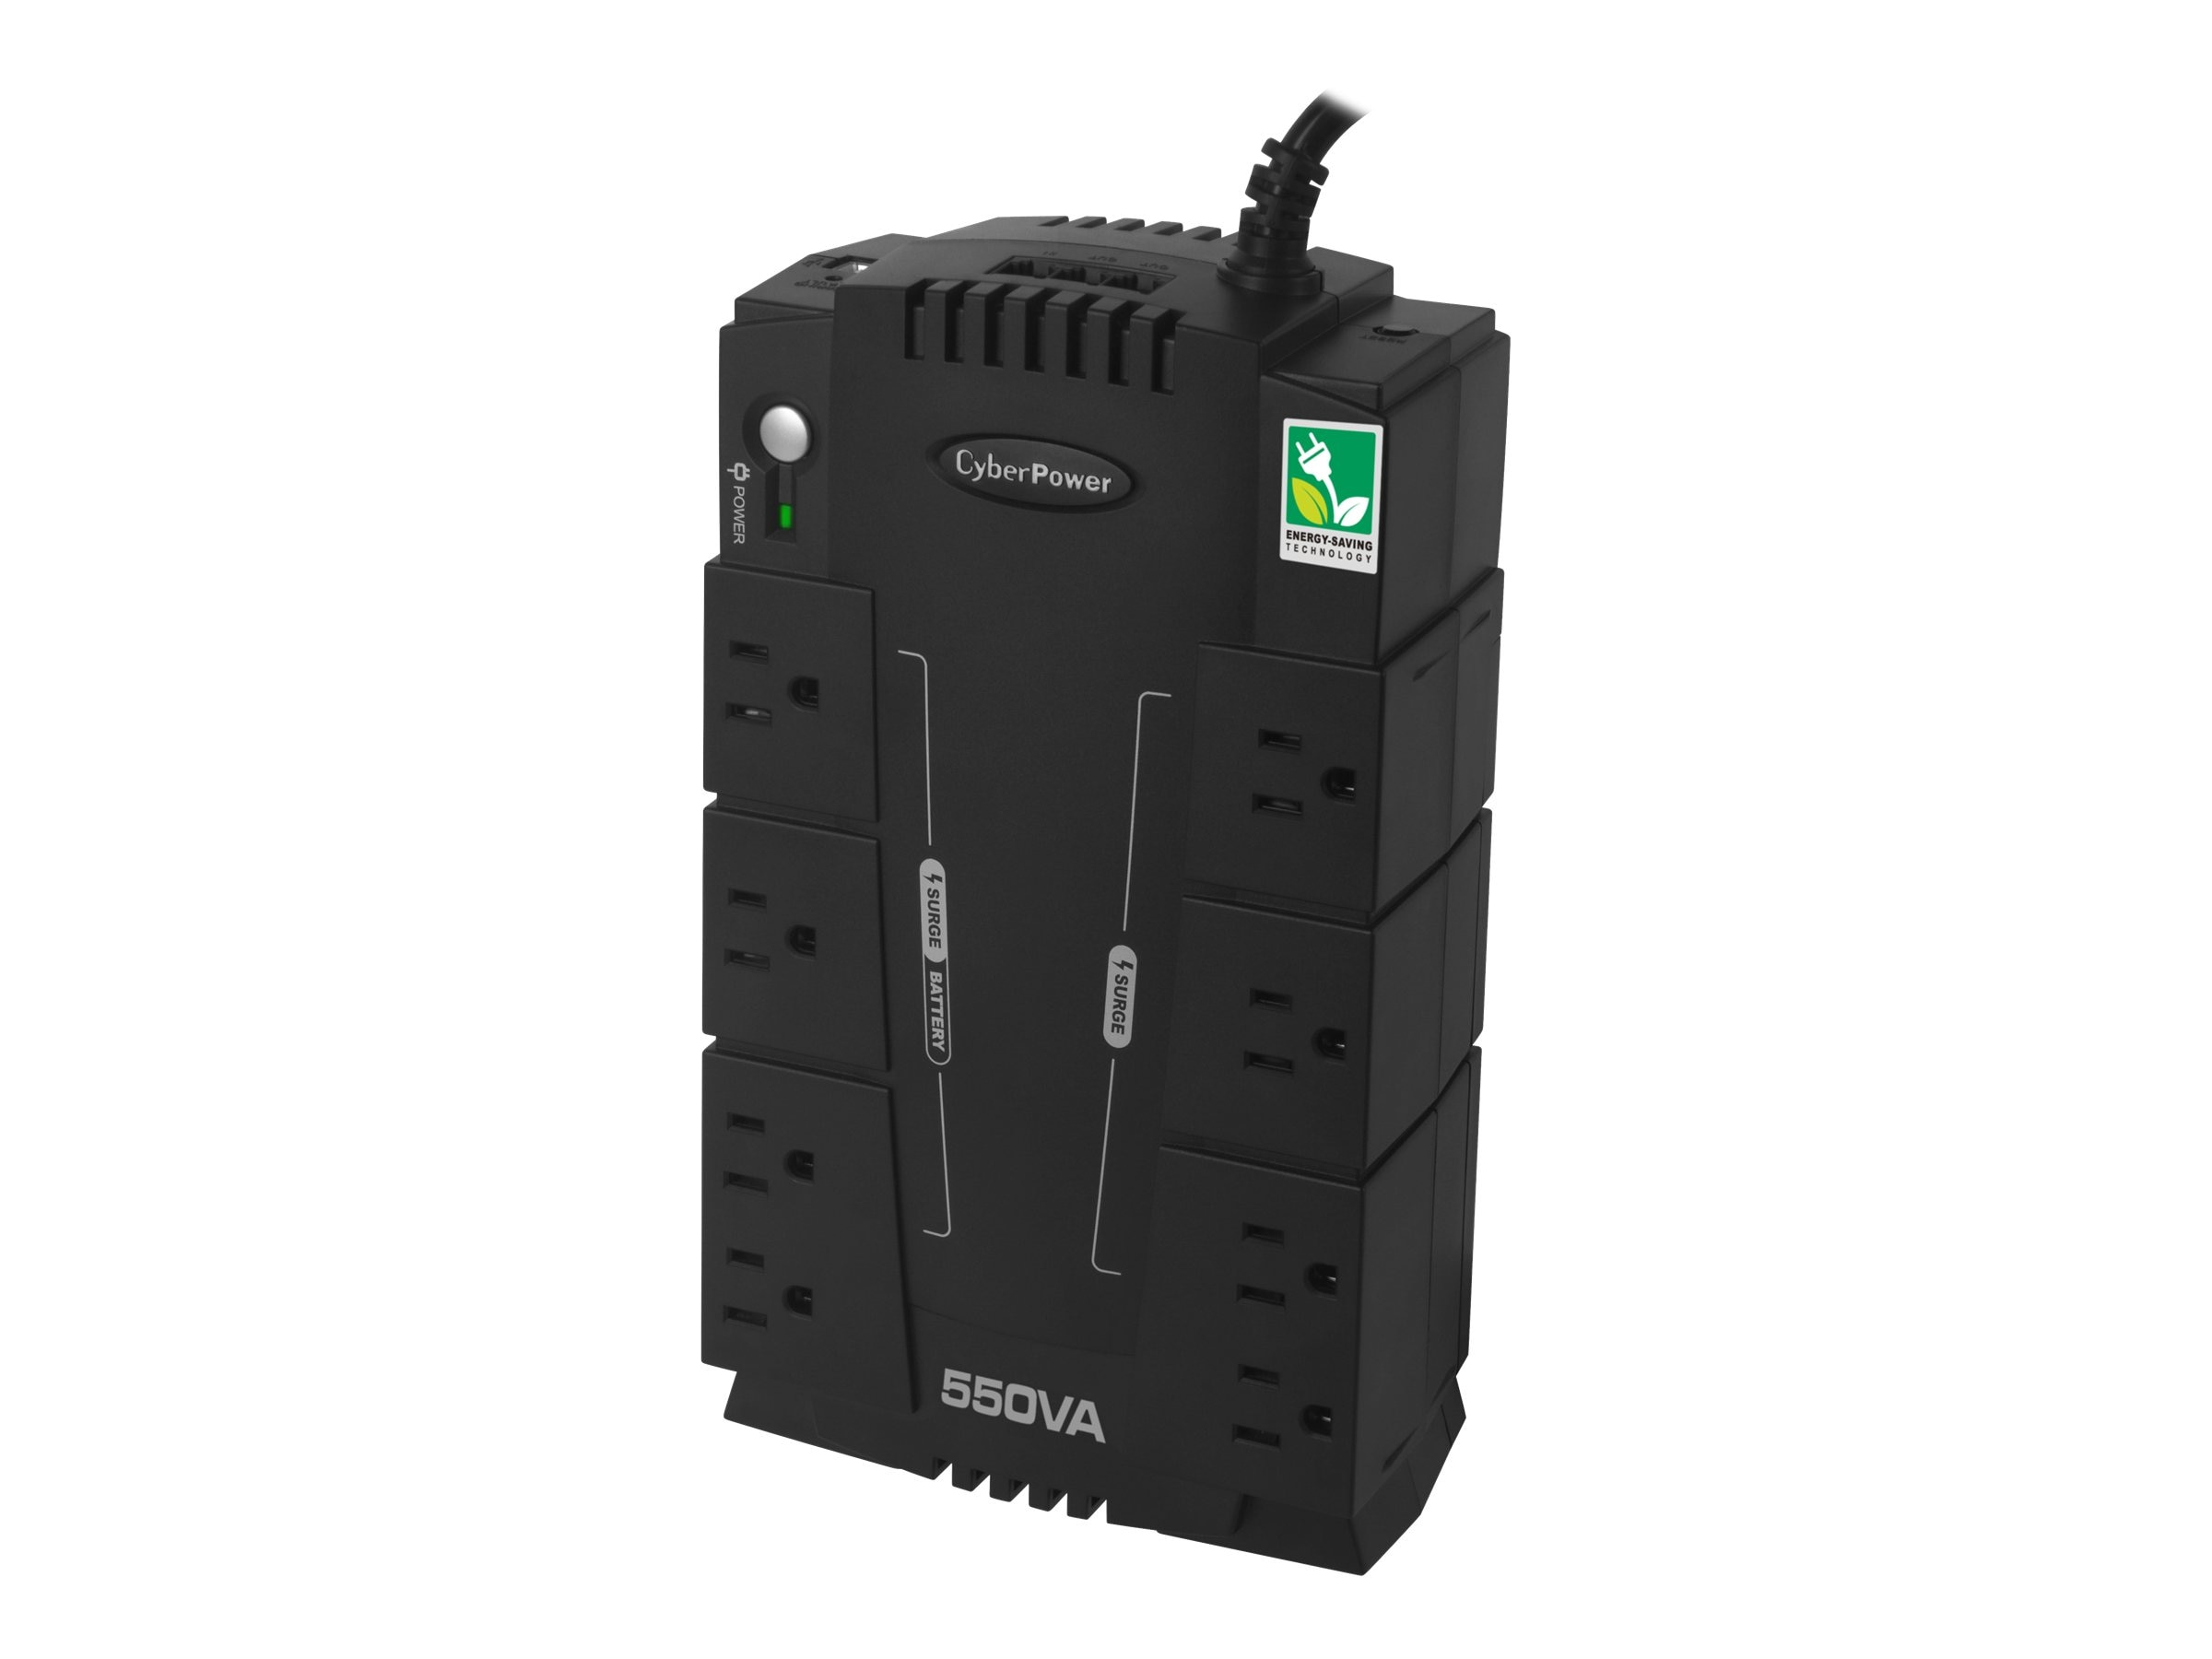 CyberPower 550VA 120V Standby Green UPS (8) 5-15R Outlets USB, RJ-11, Management Software TAA Compliant, CP550SLGTAA